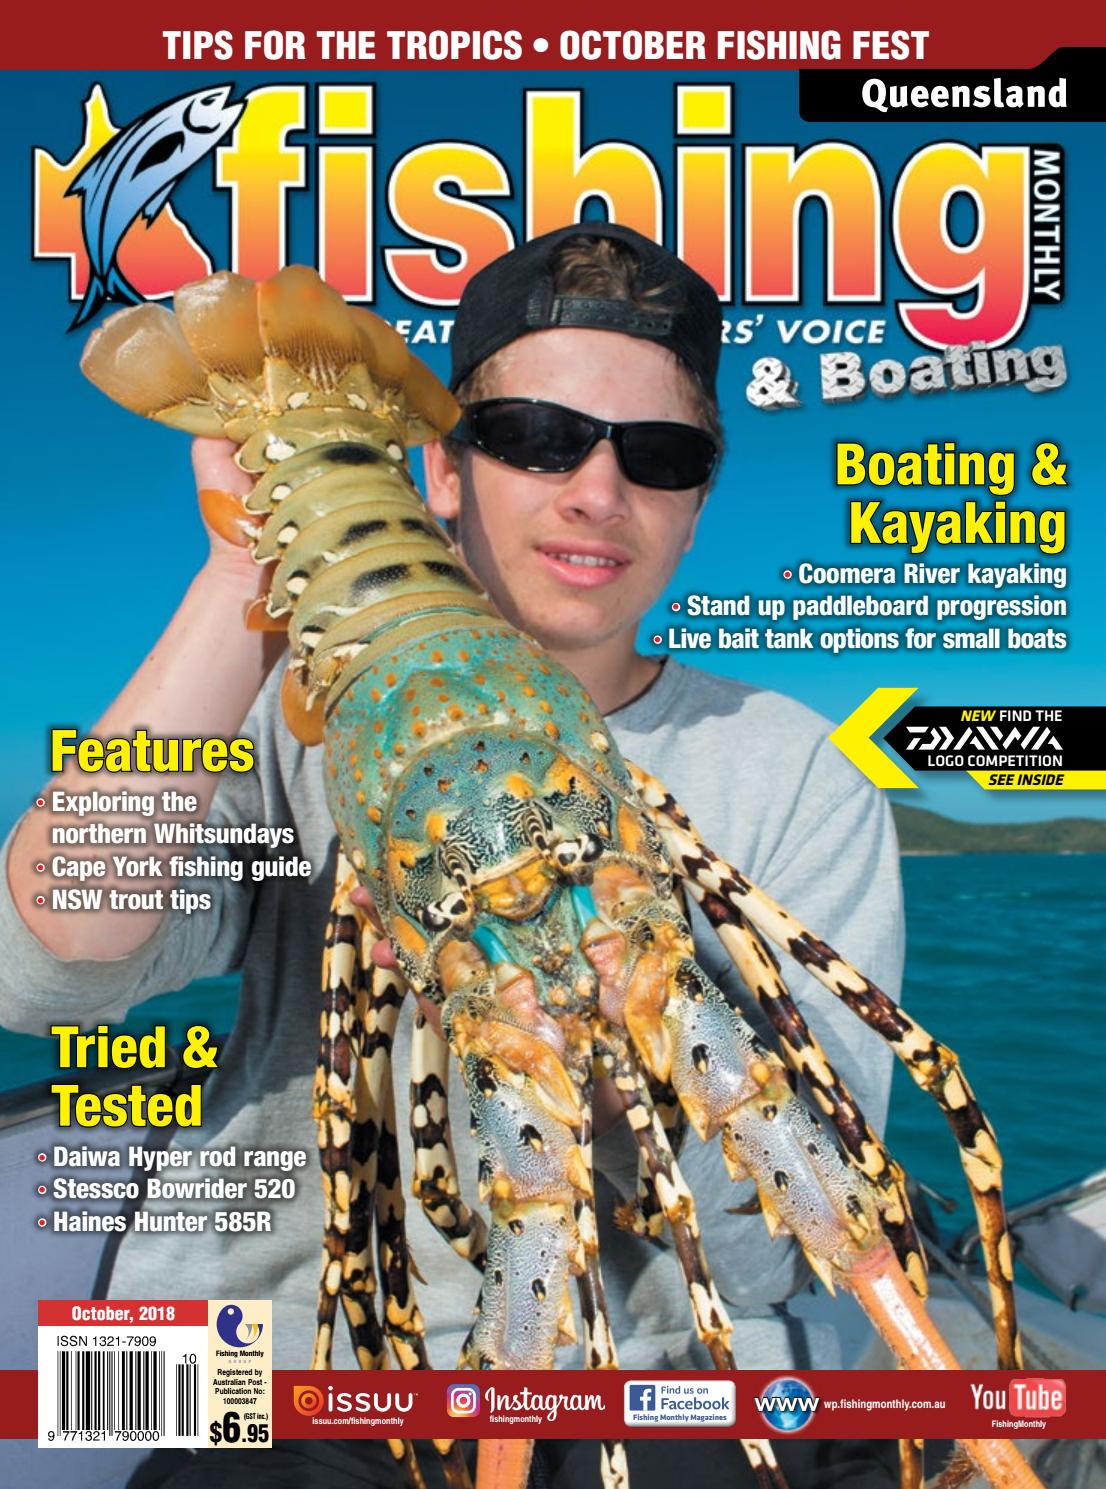 a96f584c8dc Queensland Fishing Monthly October 2018 by Fishing Monthly - issuu